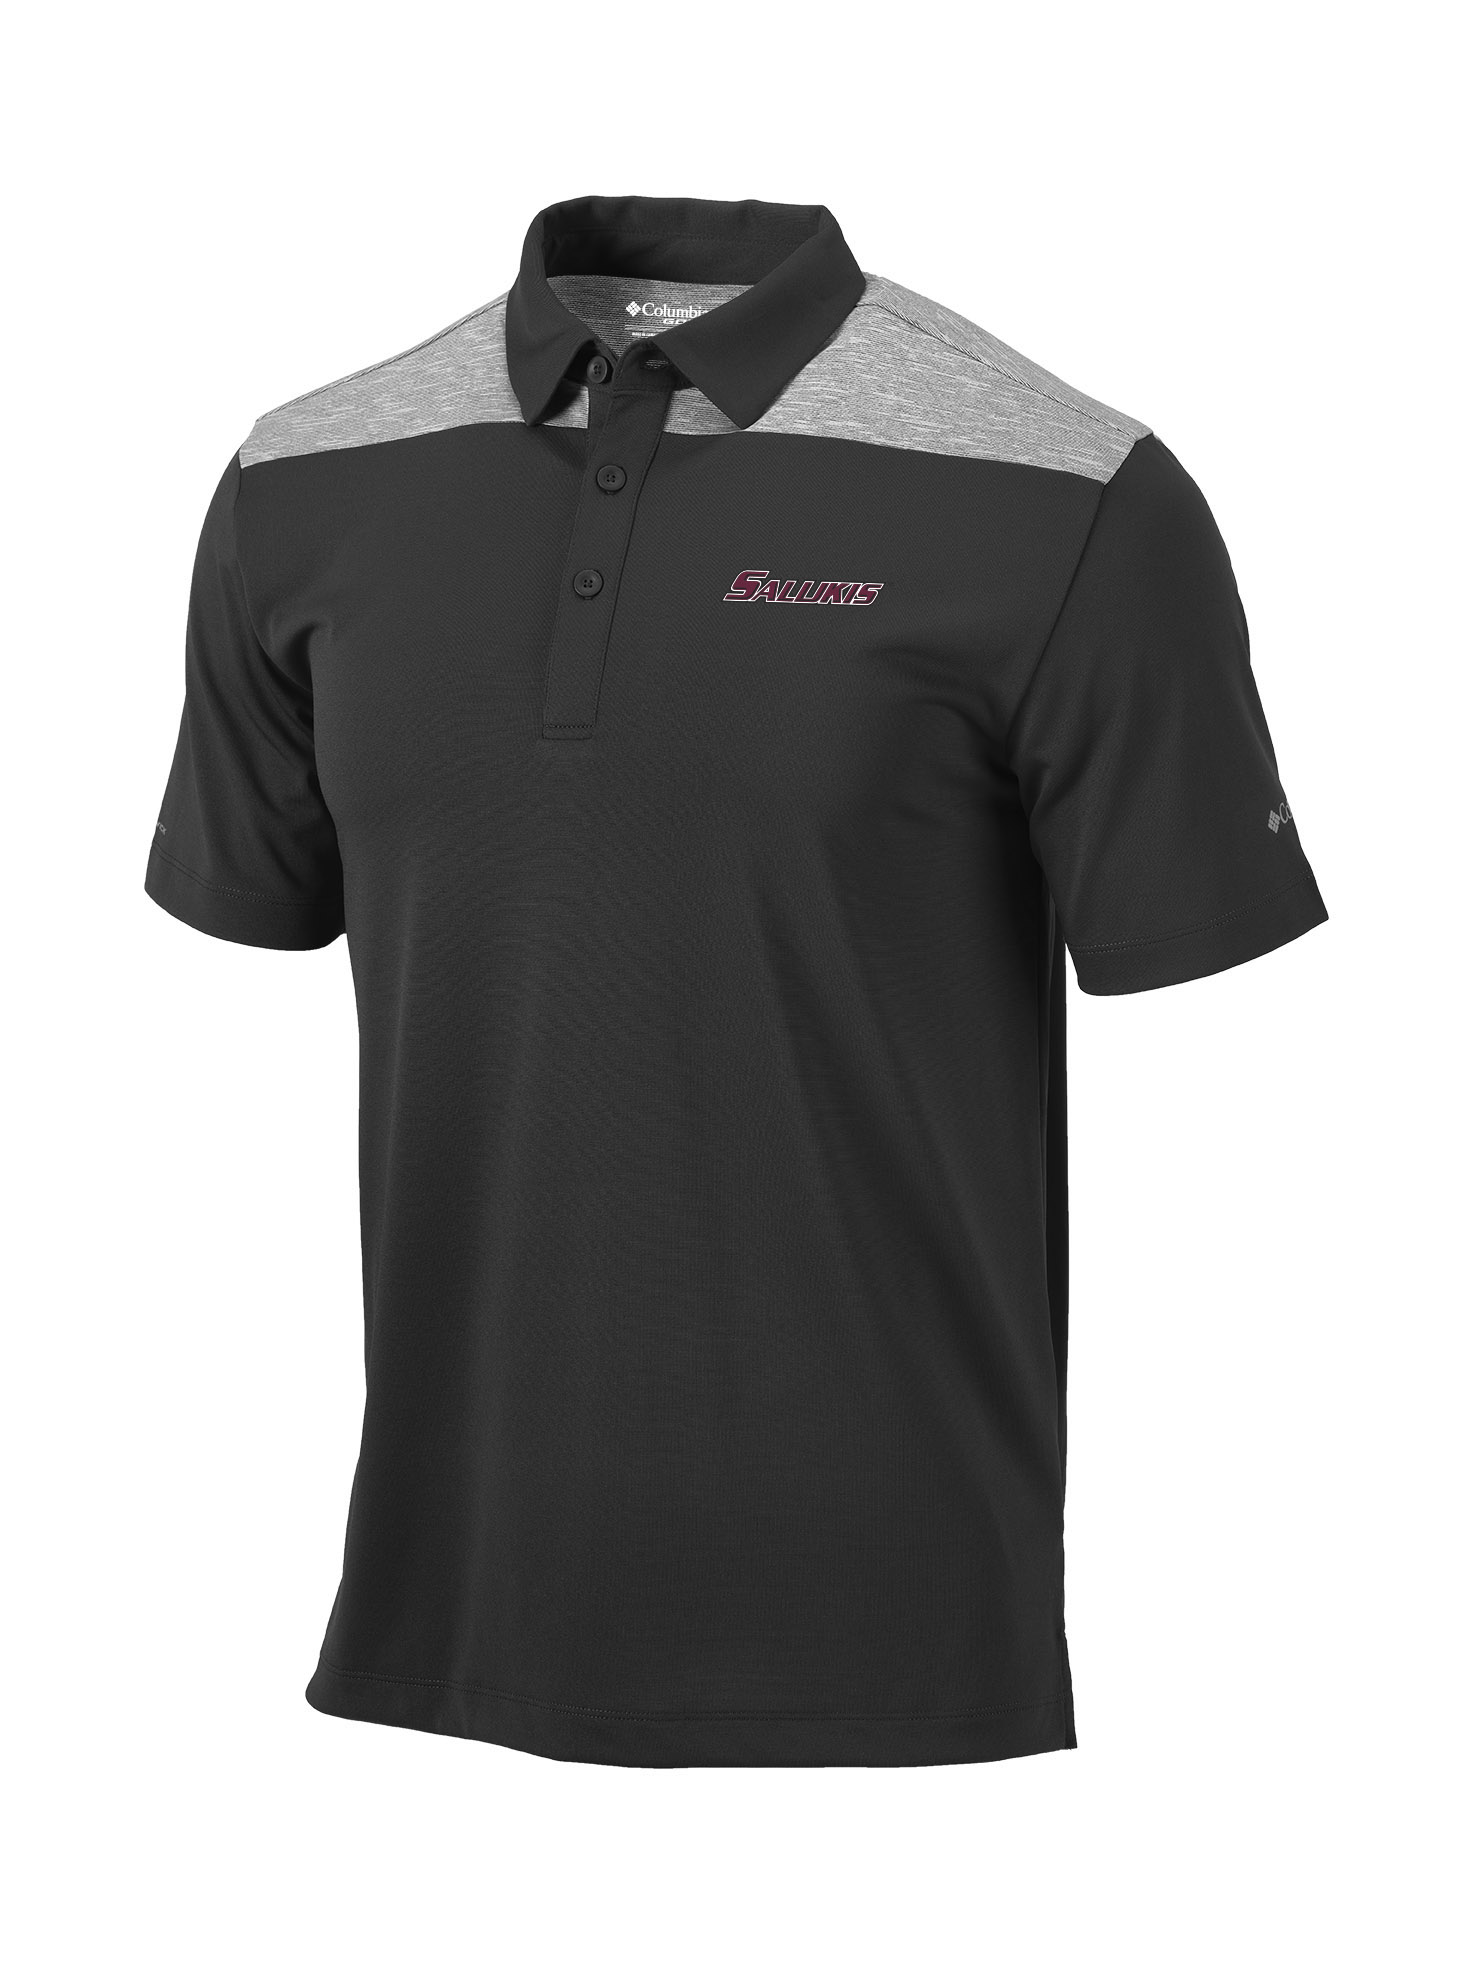 Image for the COLUMBIA® SALUKIS DUAL COLORED FORGED IRON OMNI-WICK UTILITY POLO product